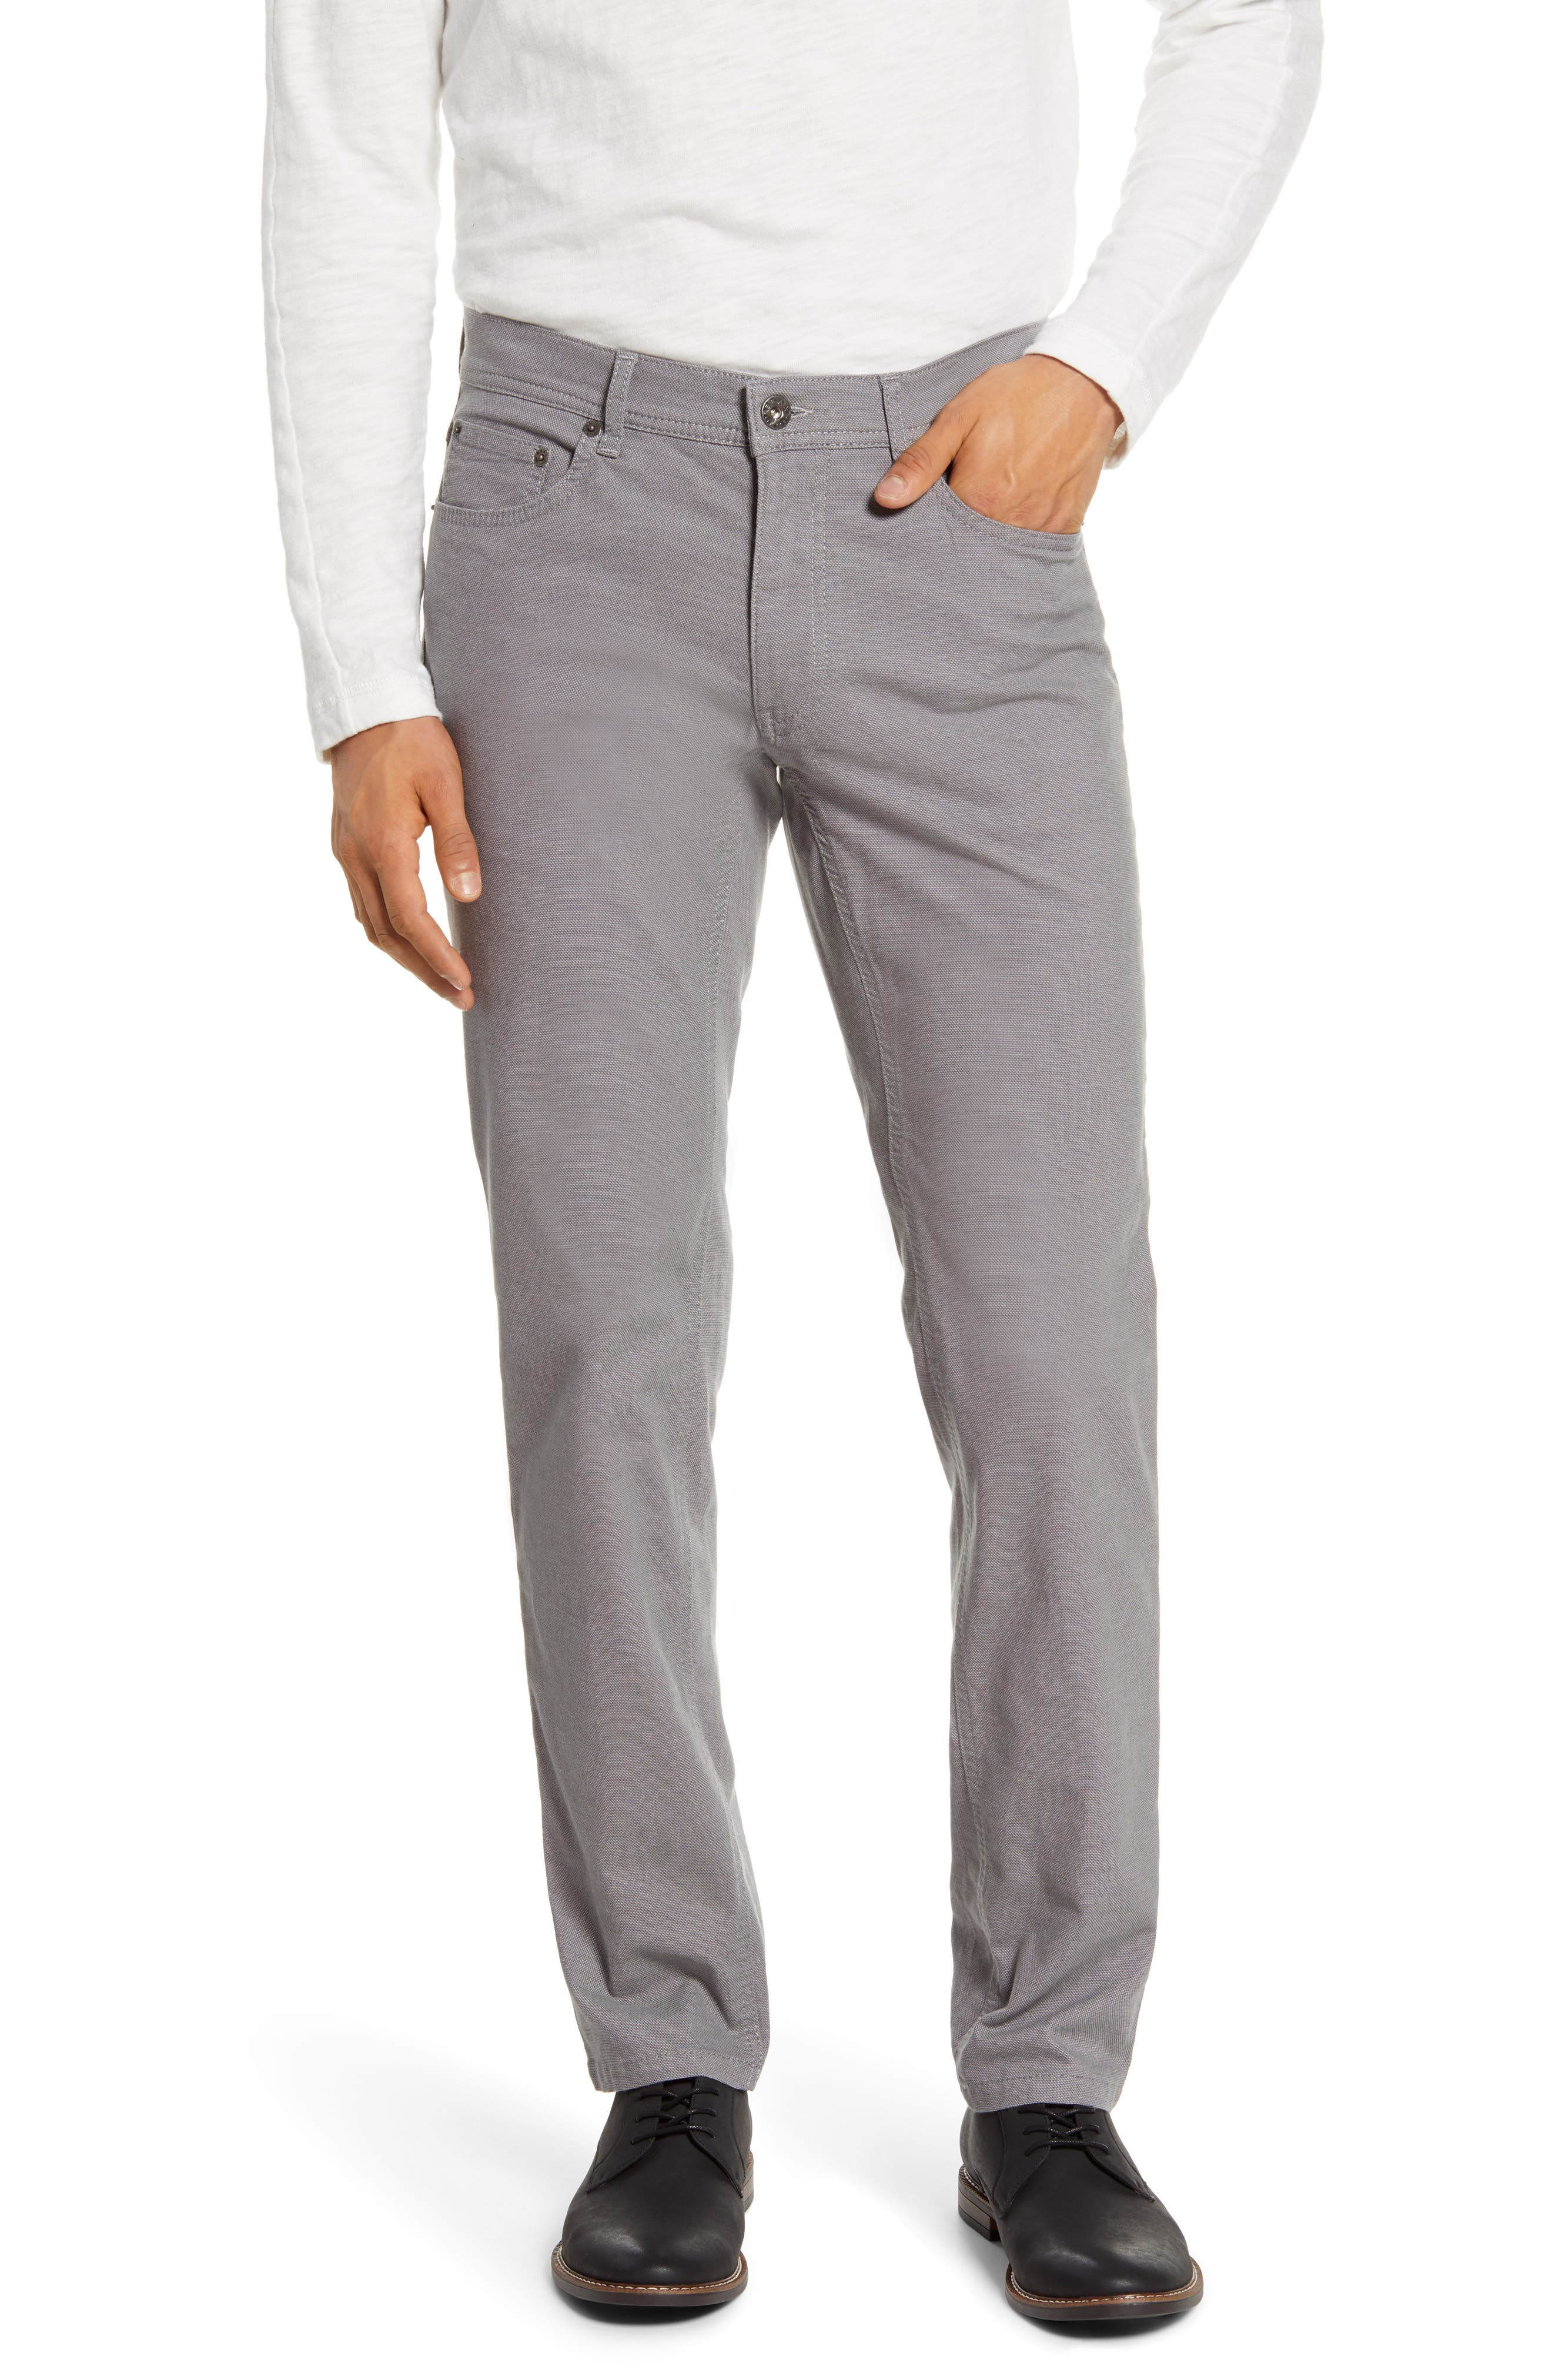 Soft coloring and a relaxed fit further the casual, comfortable appeal of five-pocket pants made from a two-tone stretch weave with a straight-leg profile. Style Name: Brax Cooper Fancy Straight Leg Pants. Style Number: 5936845 1. Available in stores.